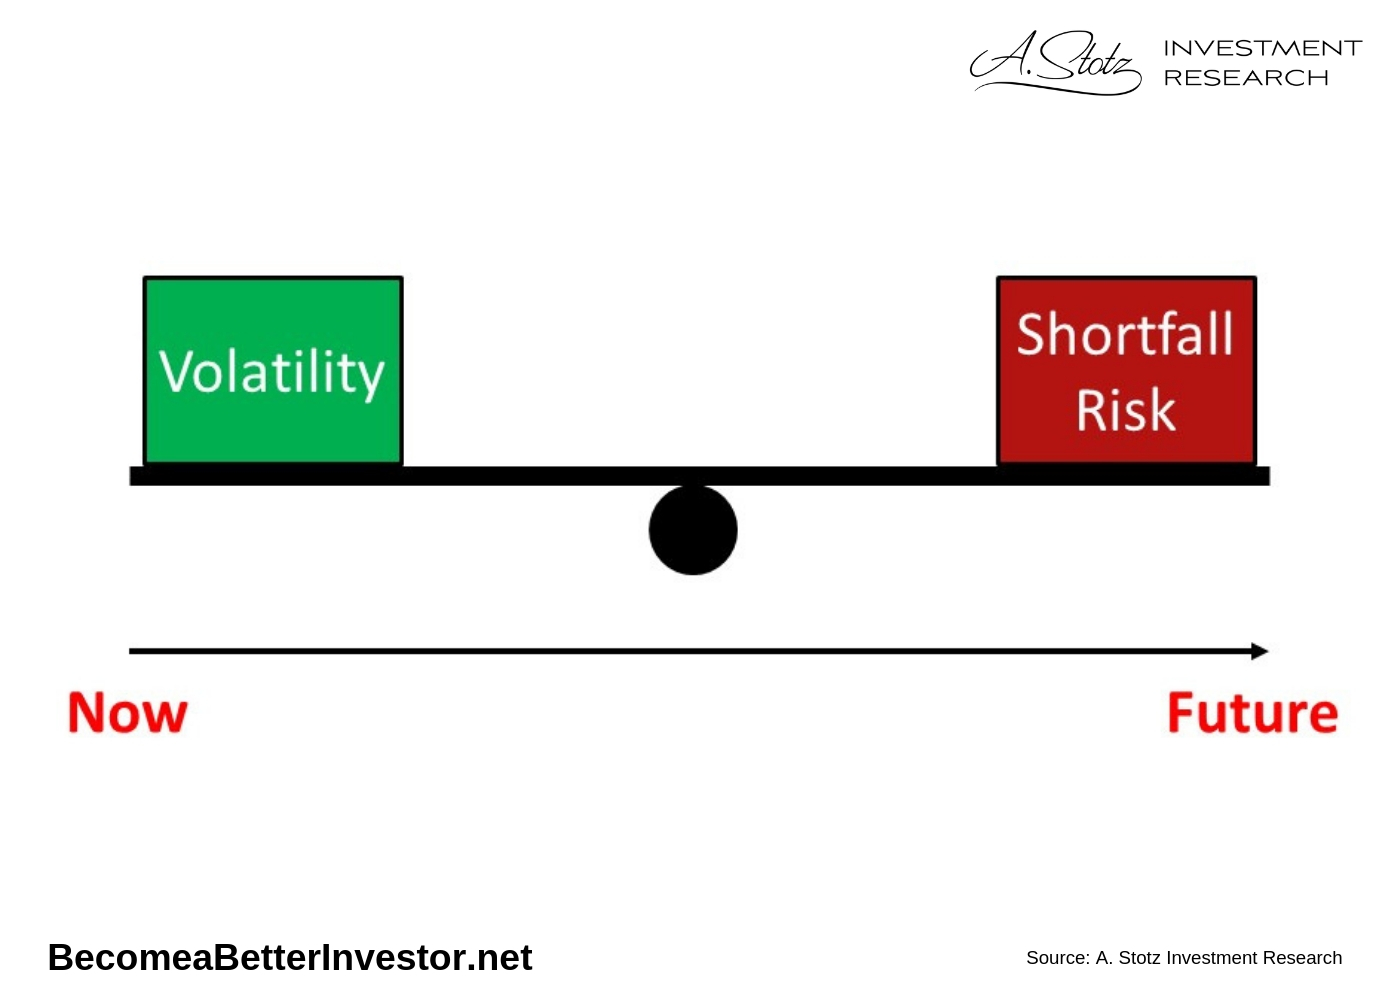 We must accept some level of volatility, but too much volatility can be so painful it leads to bad decisions